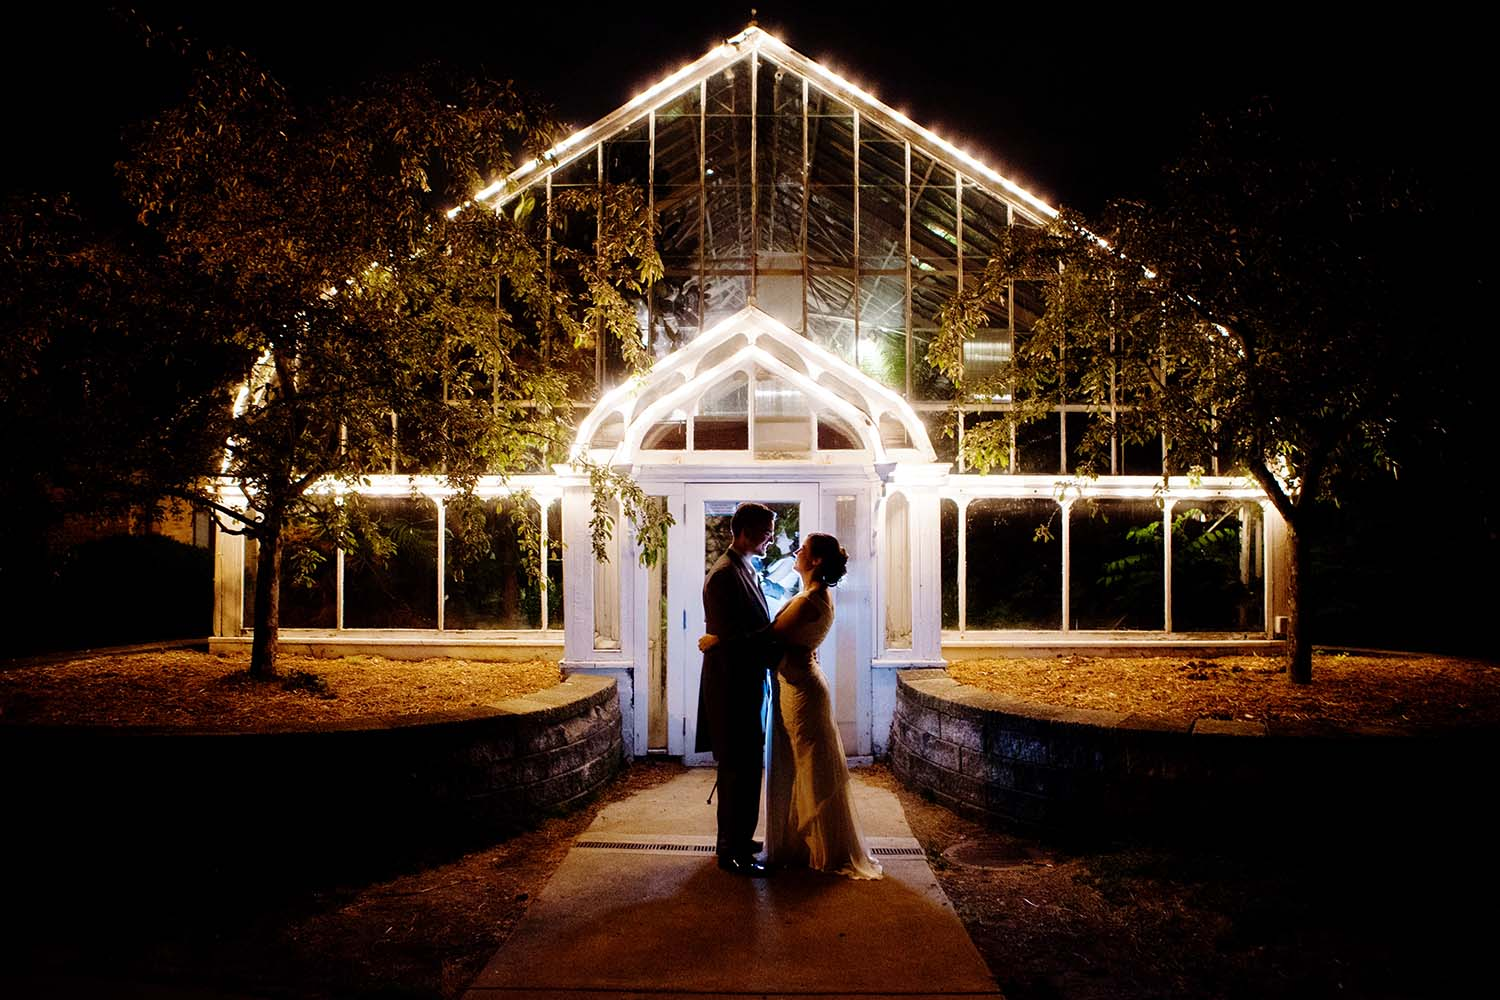 Glass Green house night wedding portrait